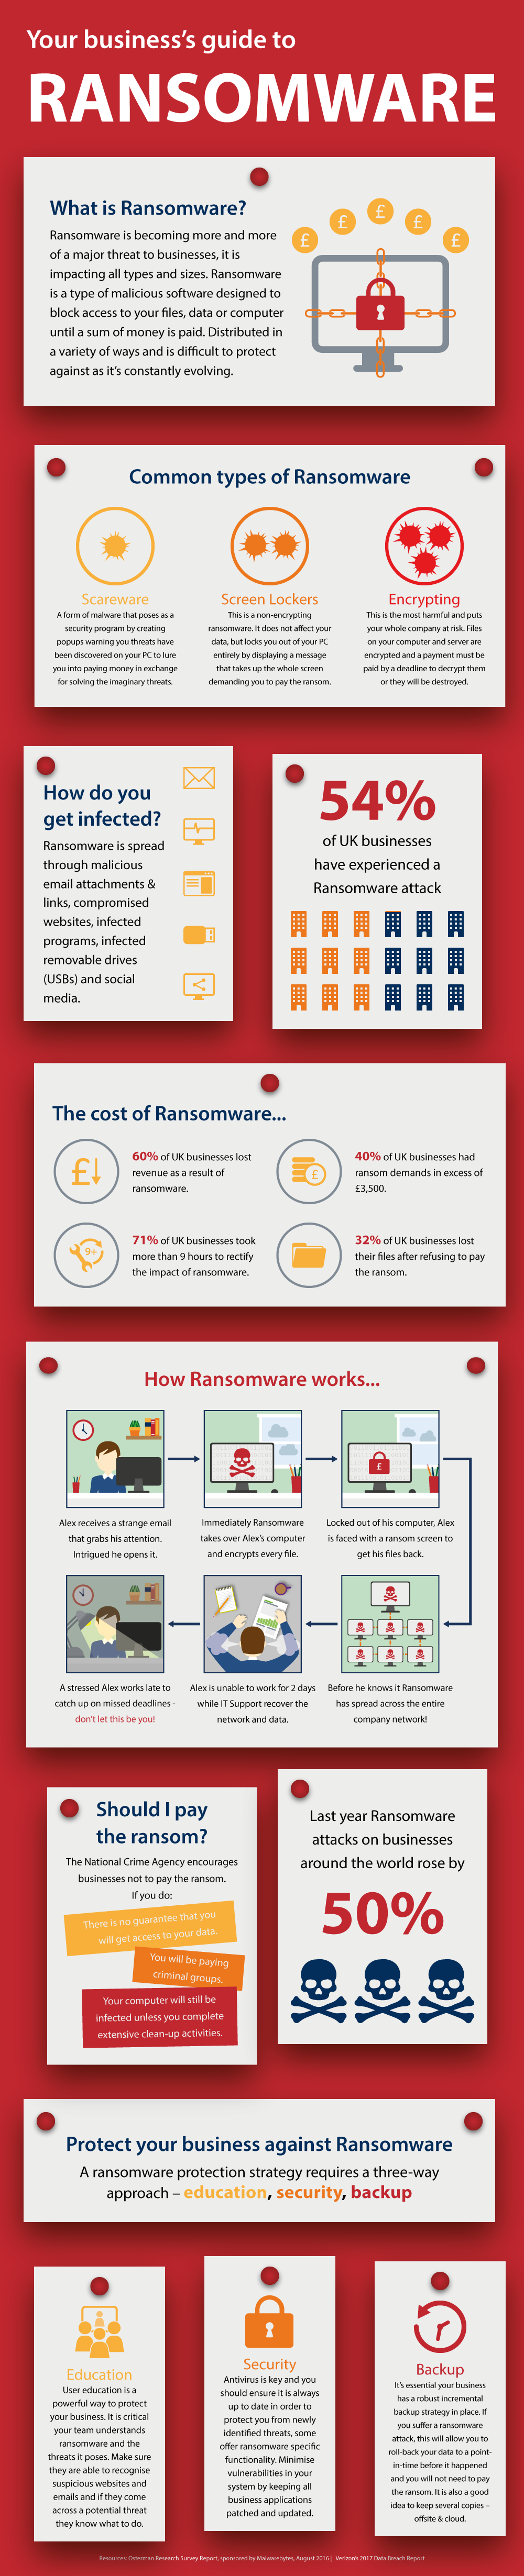 your business guide to ransomware infographic